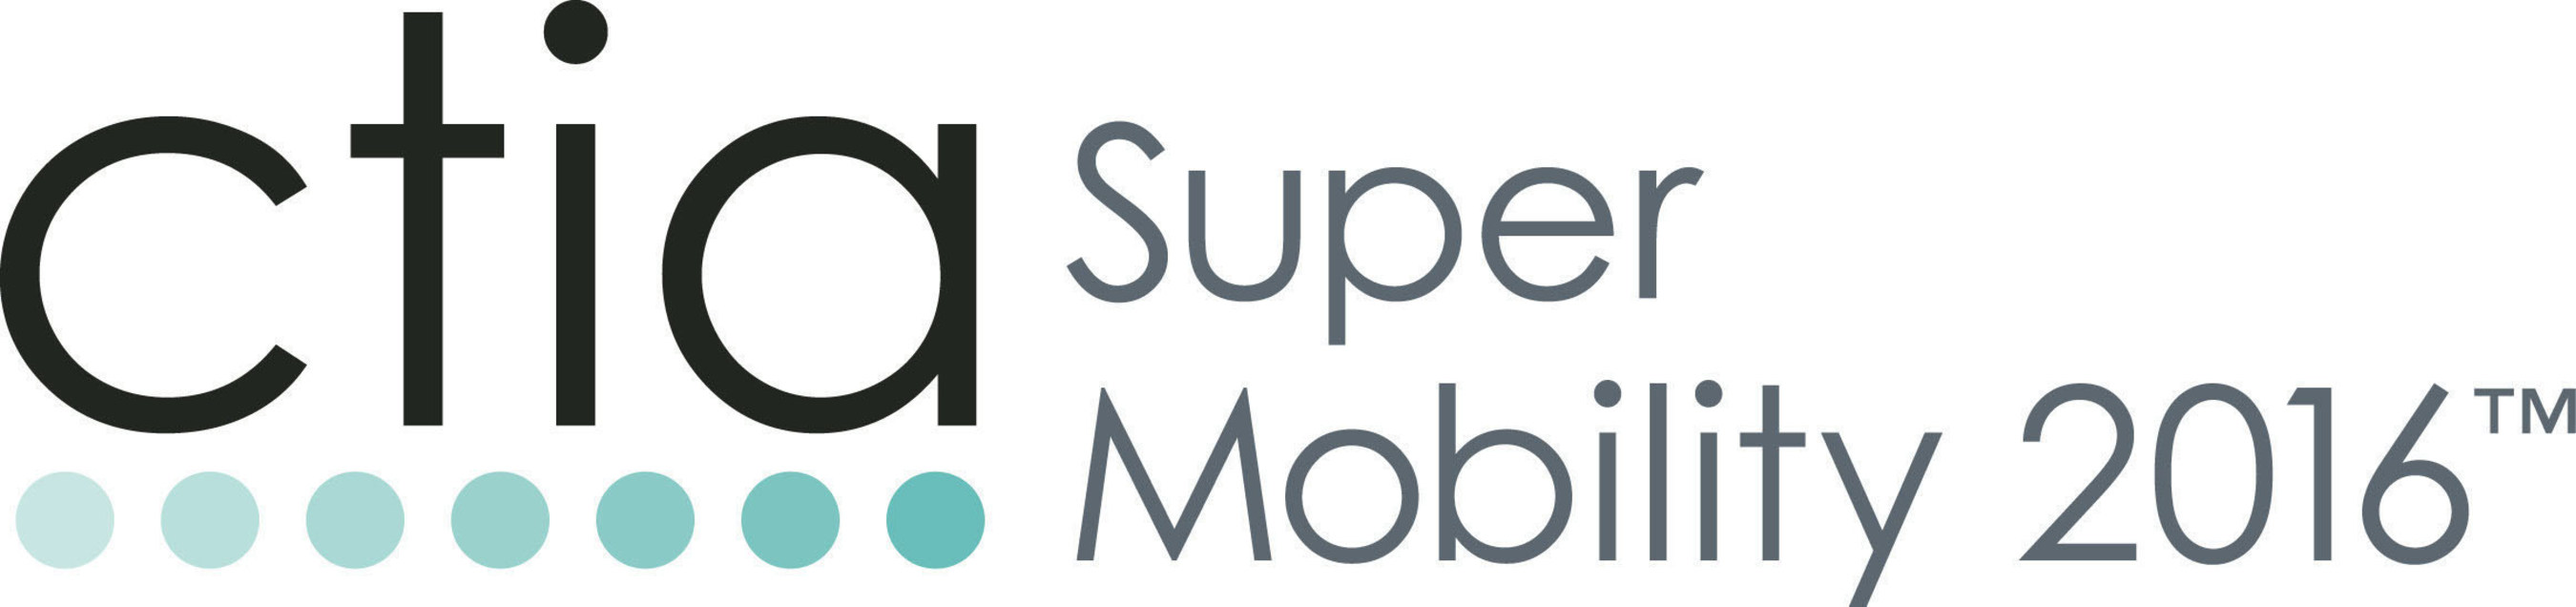 CTIA Super Mobility 2016 Enlists Grammy' and Academy Award' Winner John Legend to Join Dynamic Keynote Lineup